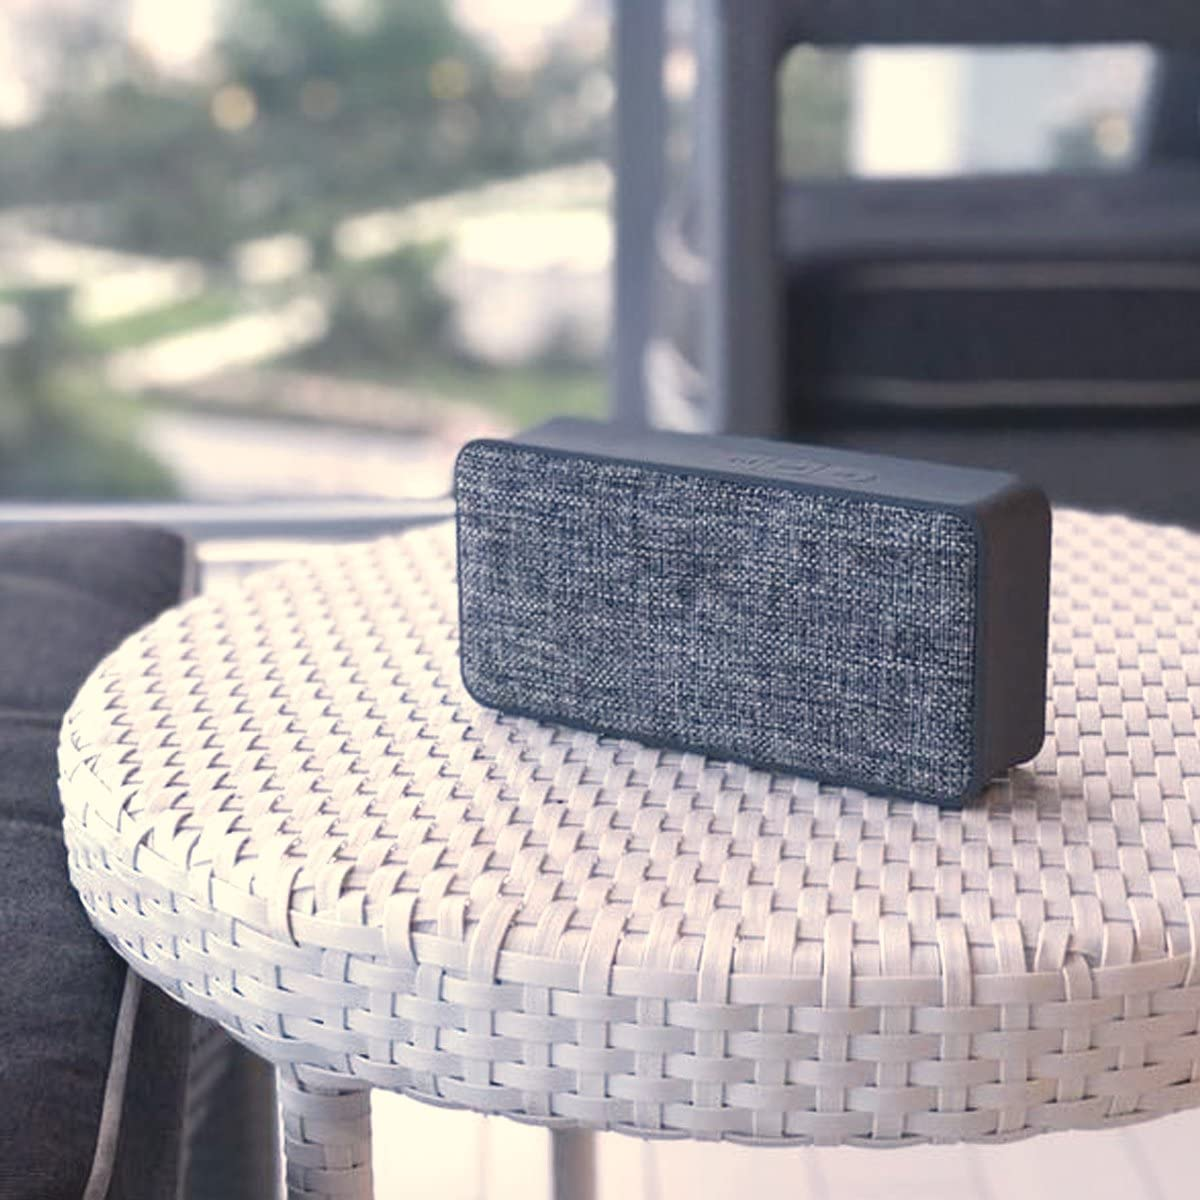 Great for Outdoors and Indoors AUX Built-in Microphone with Fabric Surface Woozik Home Portable Bluetooth Speaker